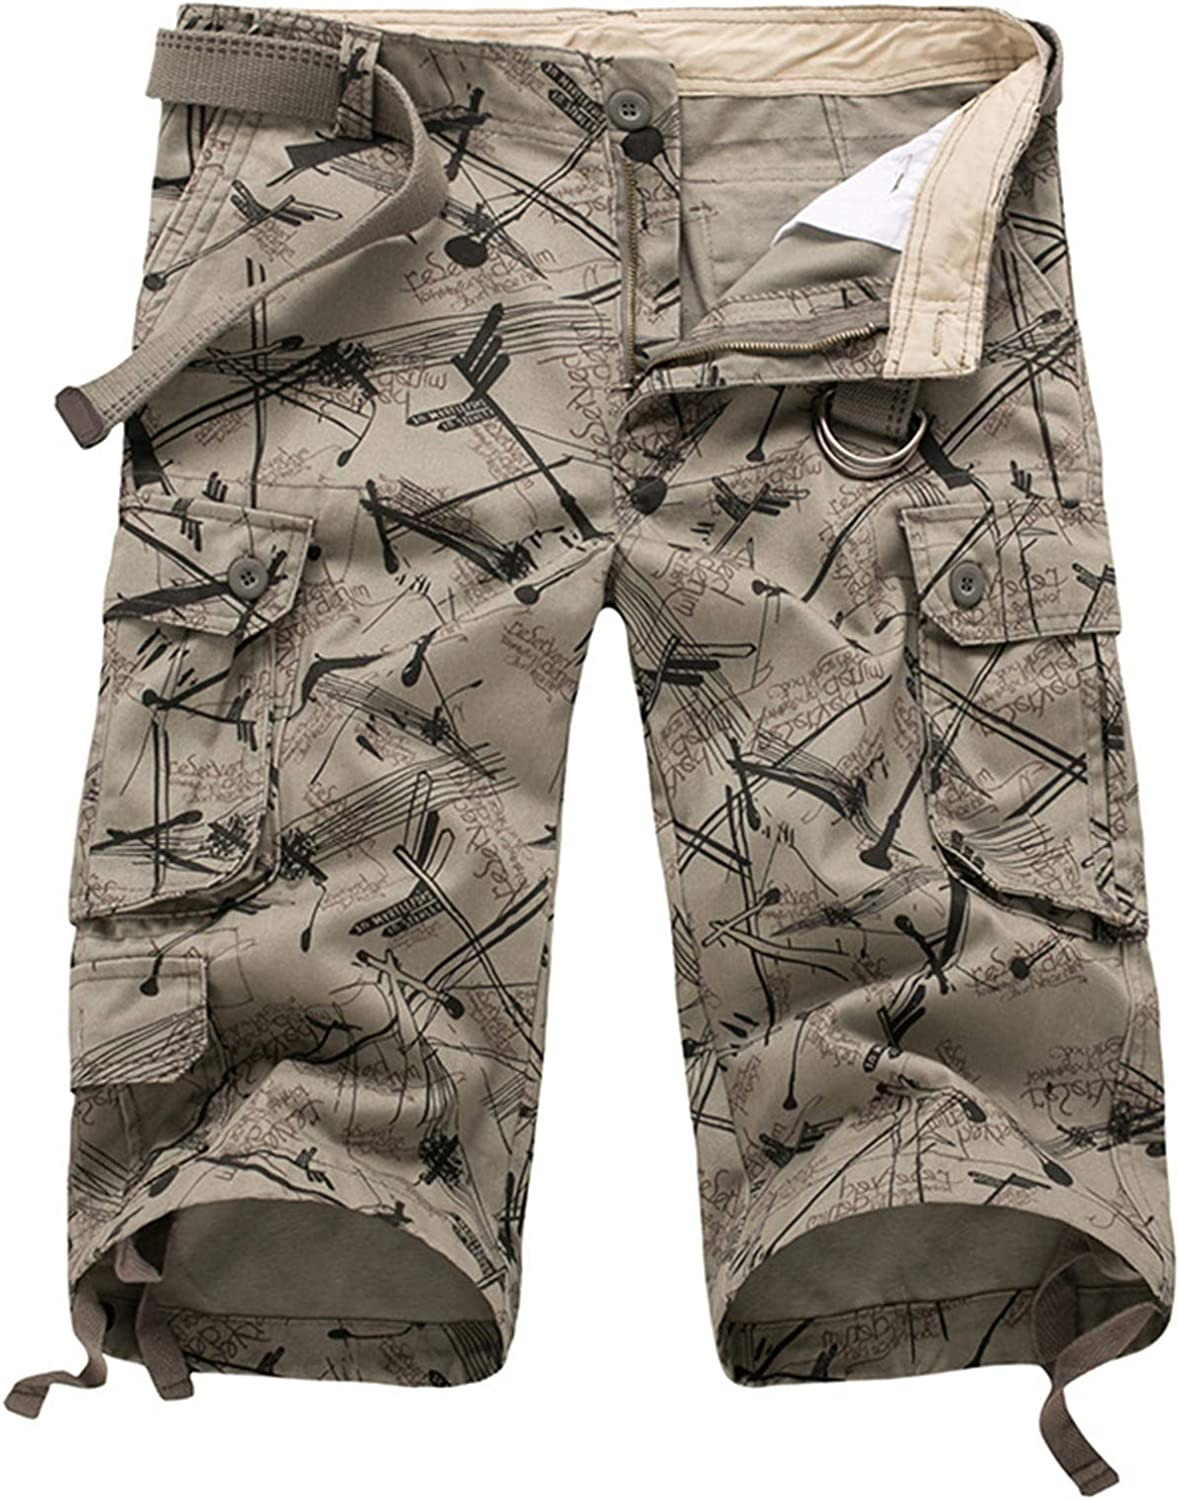 Summer Men's Cargo Rapid rise Beach Dallas Mall Shorts Casual Camo Mil Baggy Camouflage